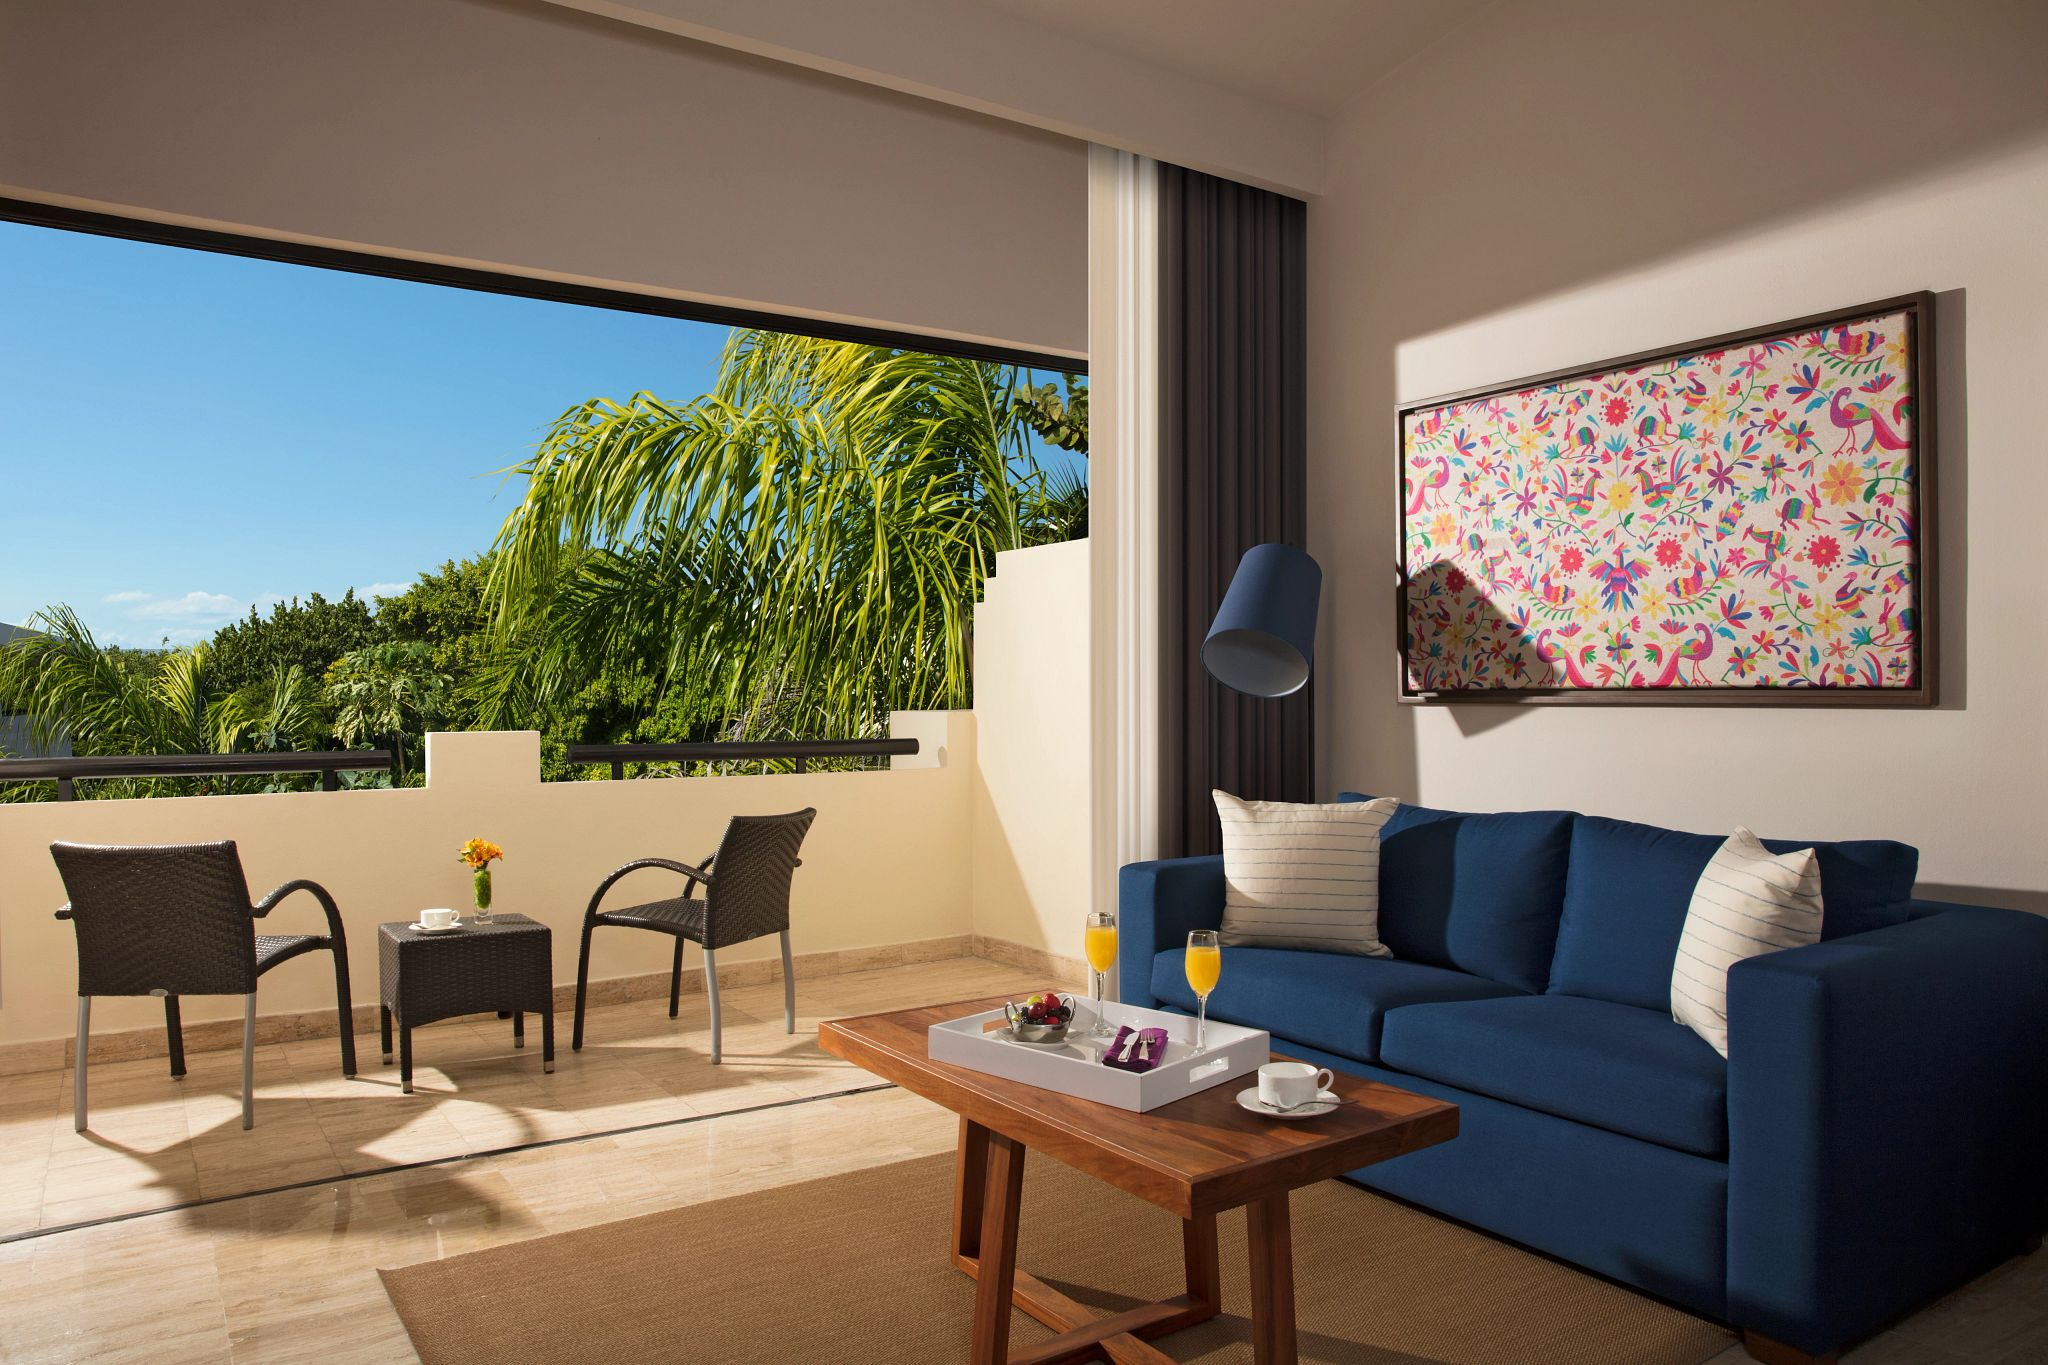 living area and terrace of a hotel suite with a tropical view